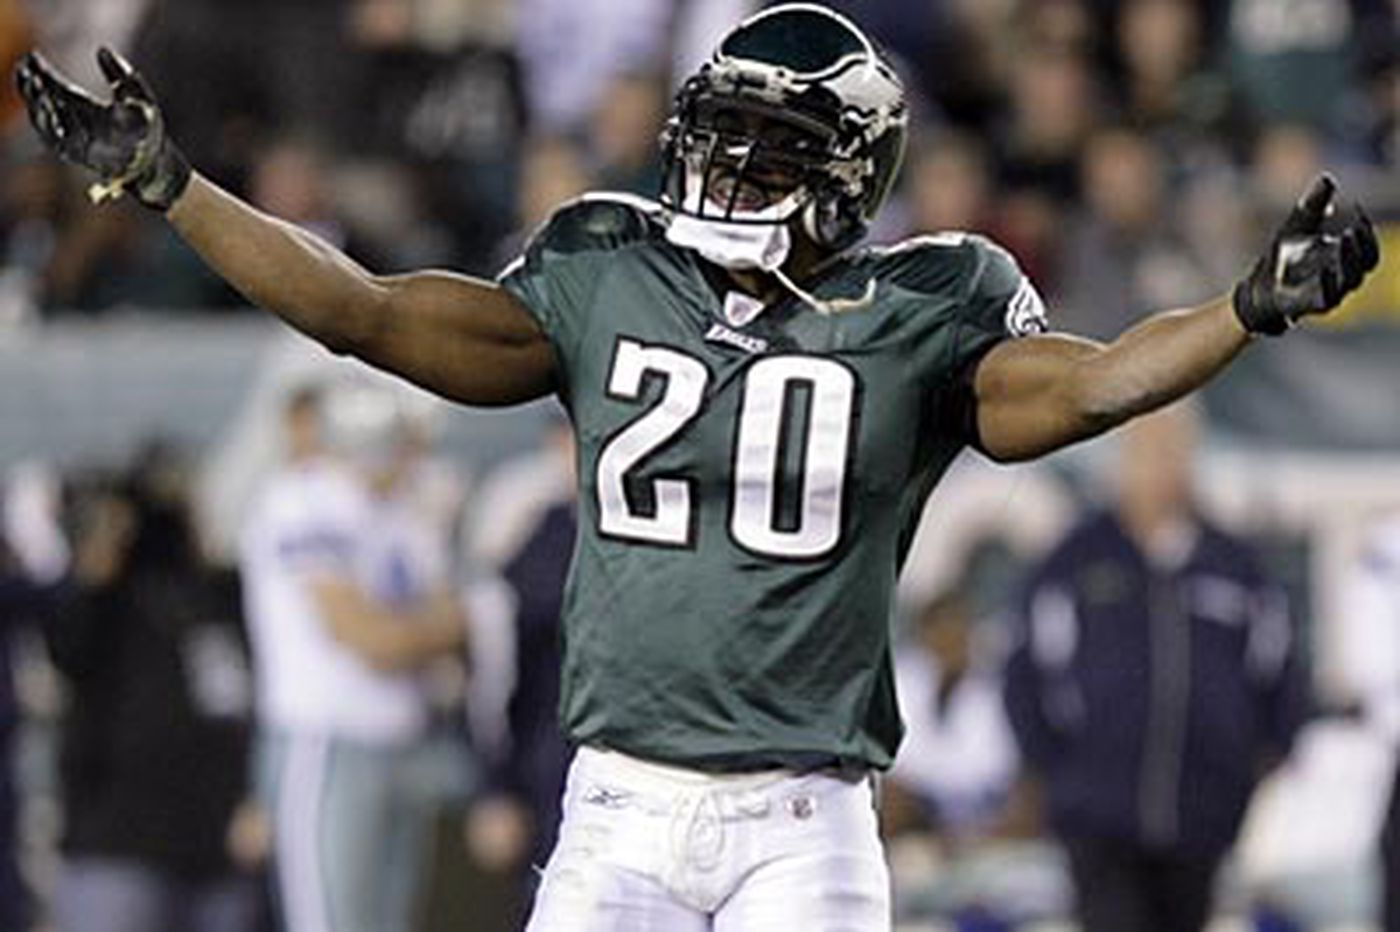 Mike Missanelli: Brian Dawkins the quintessential Eagles fan favorite